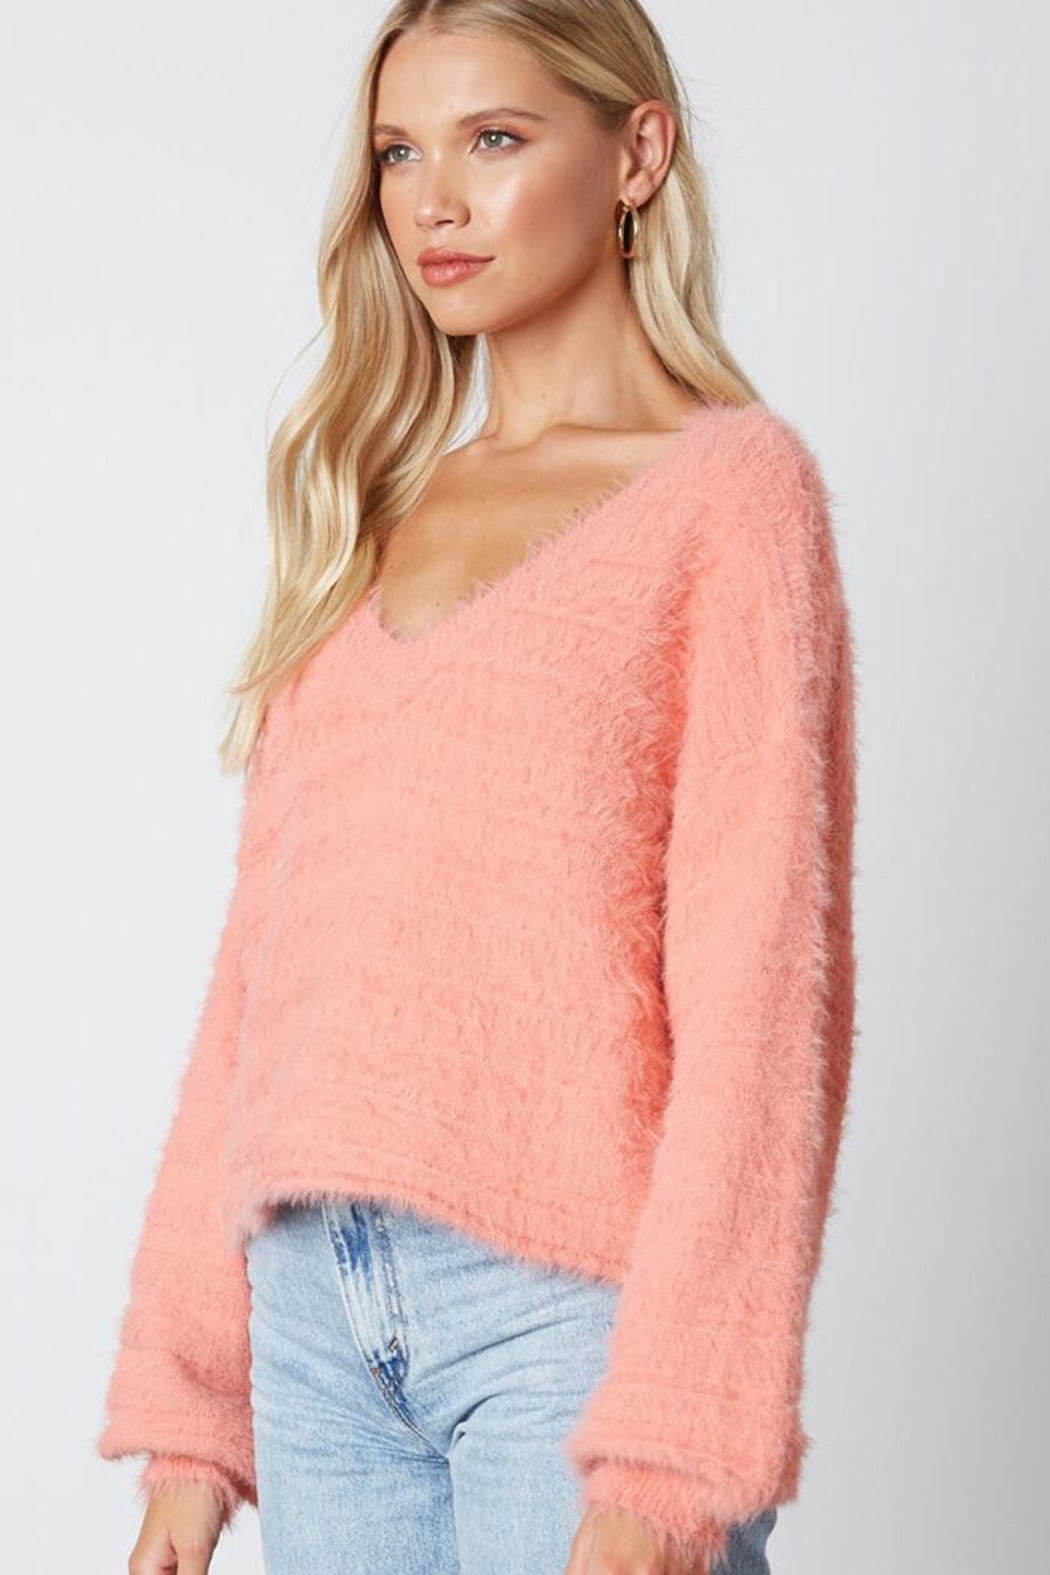 Cotton Candy LA Fuzzy v-Neck Sweaater - Side Cropped Image